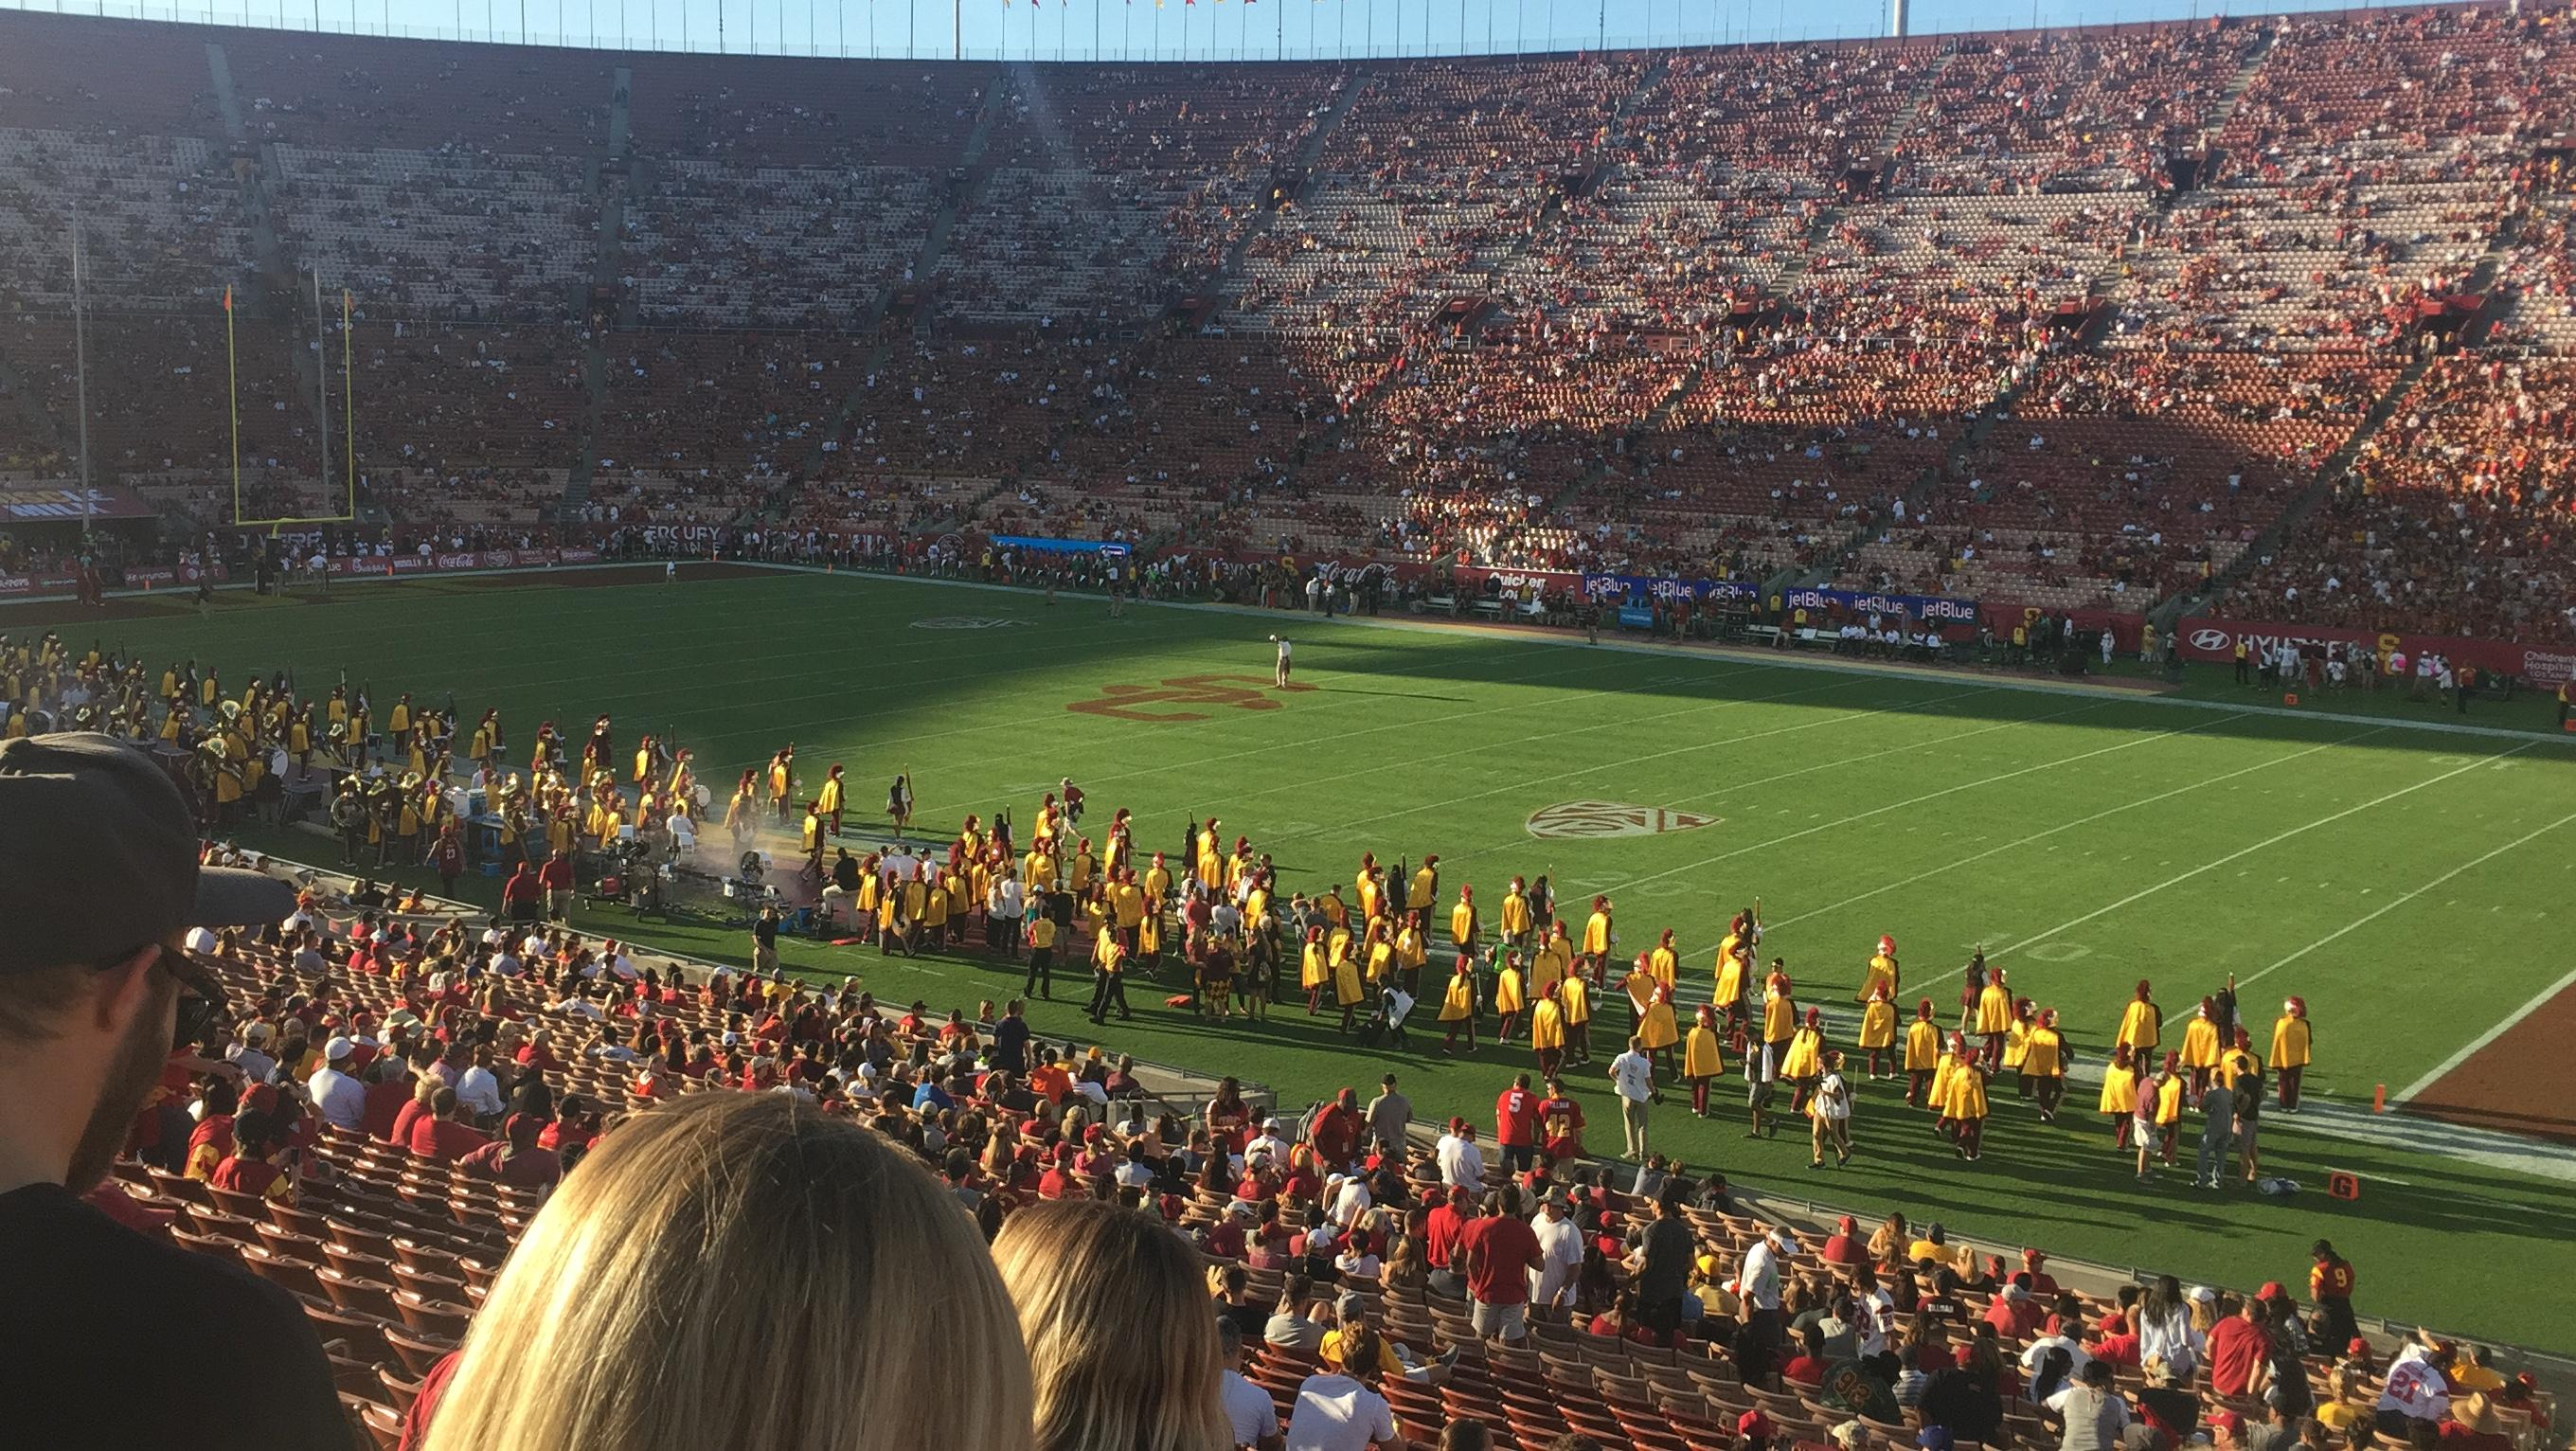 Los Angeles Memorial Coliseum Section 103b Row 39 Seat 16